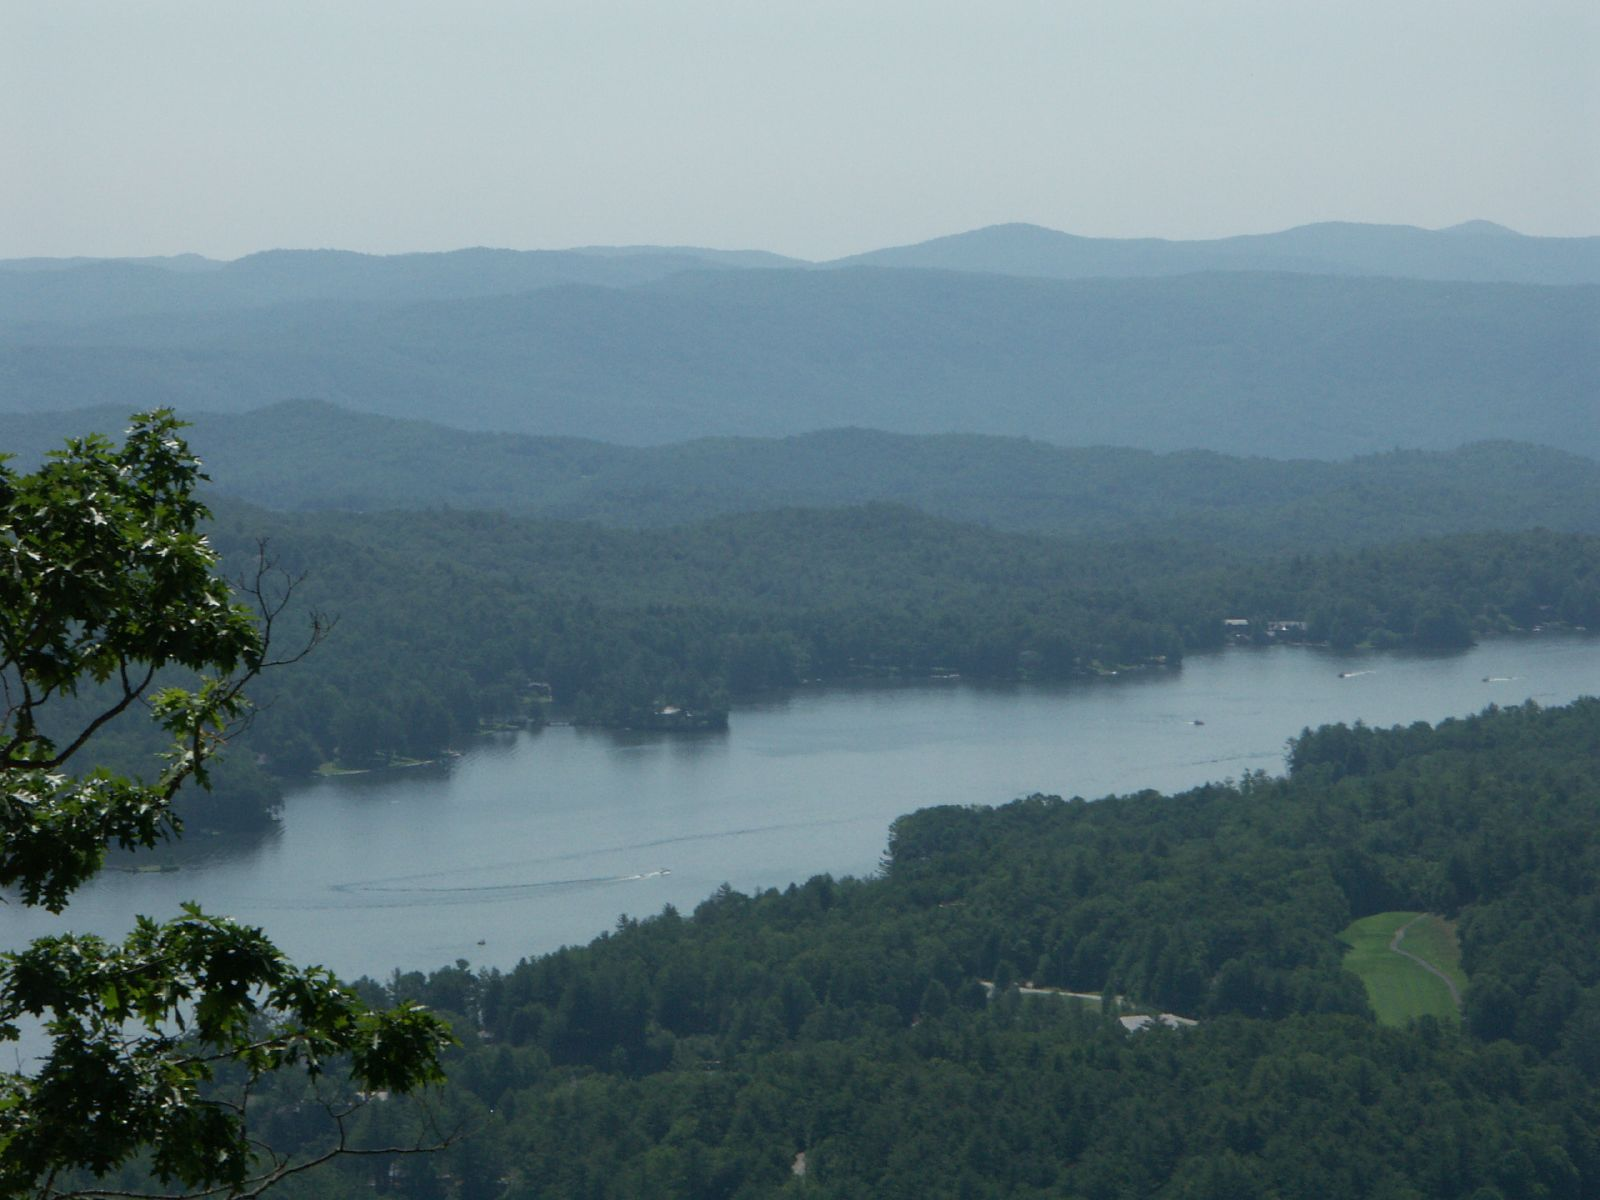 lake toxaway Search lake toxaway real estate property listings to find homes for sale in lake toxaway, nc browse houses for sale in lake toxaway today.